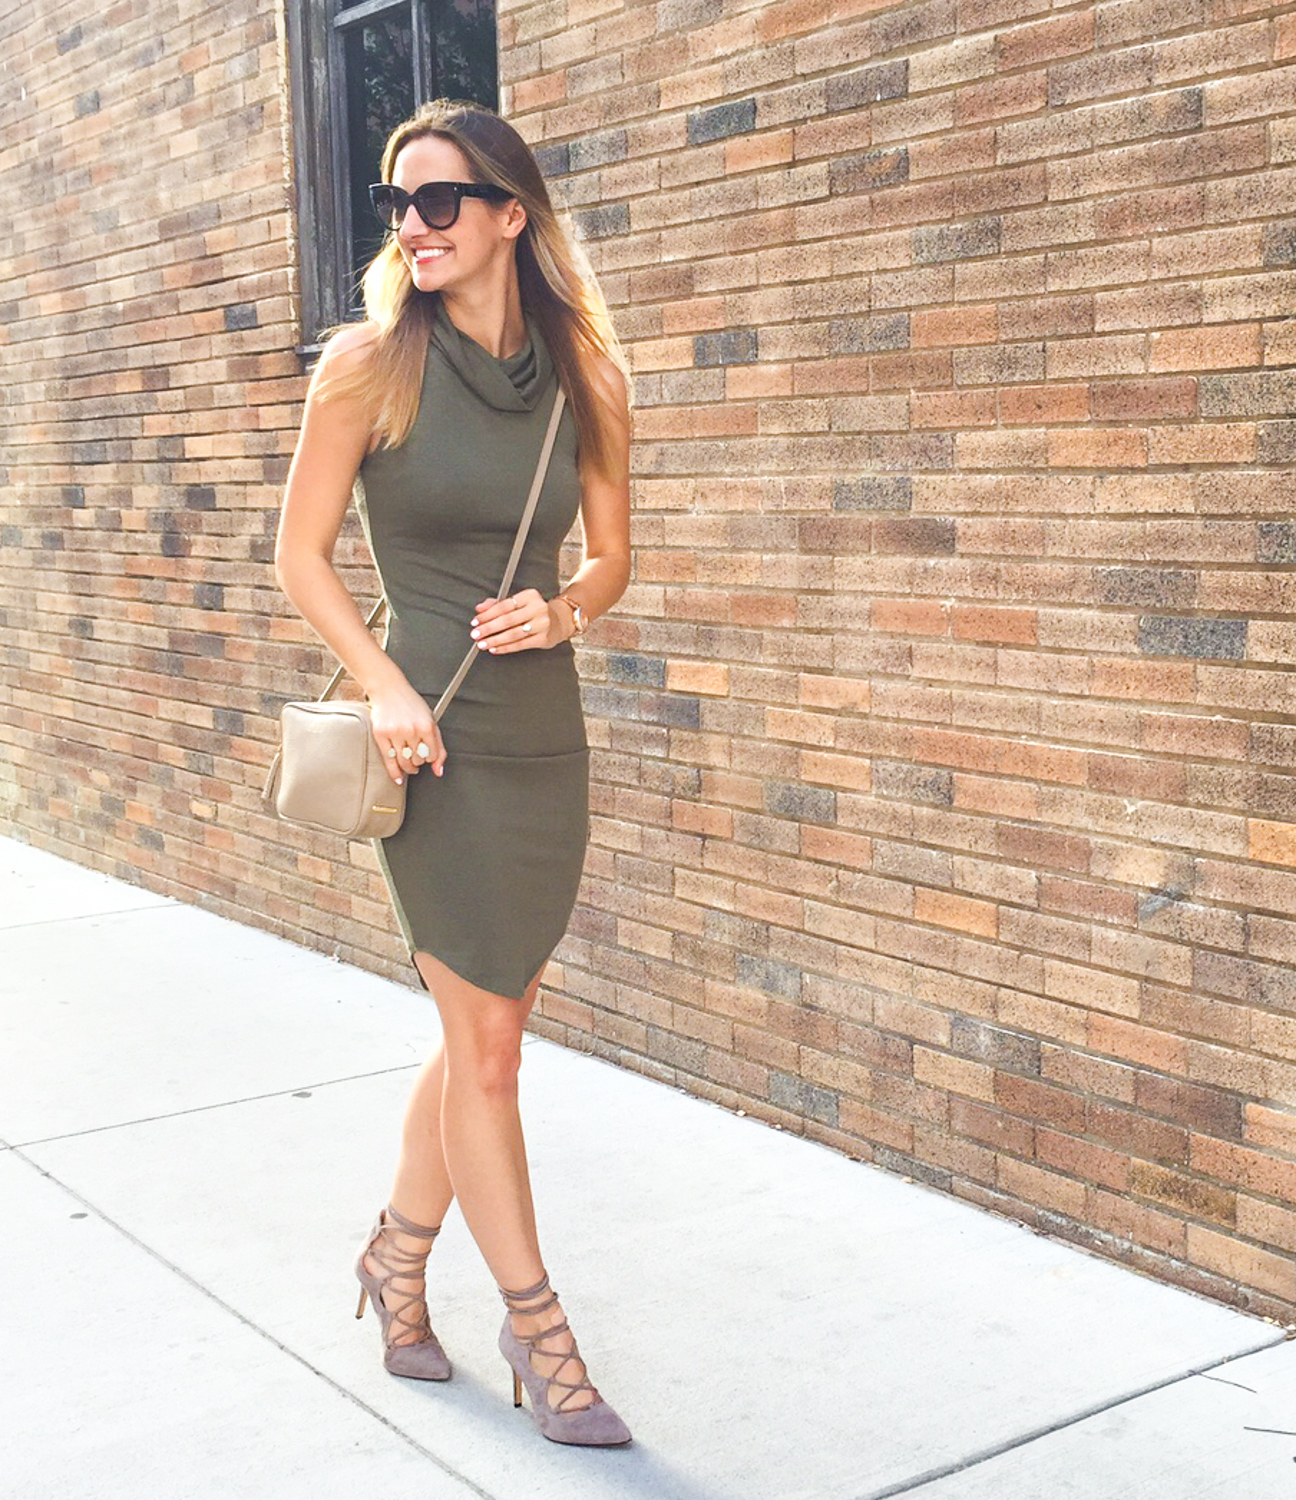 livvyland-blog-olivia-watson-nordstrom-cowl-neck-body-con-dress-lace-up-heels-austin-texas-fashion-blogger-3